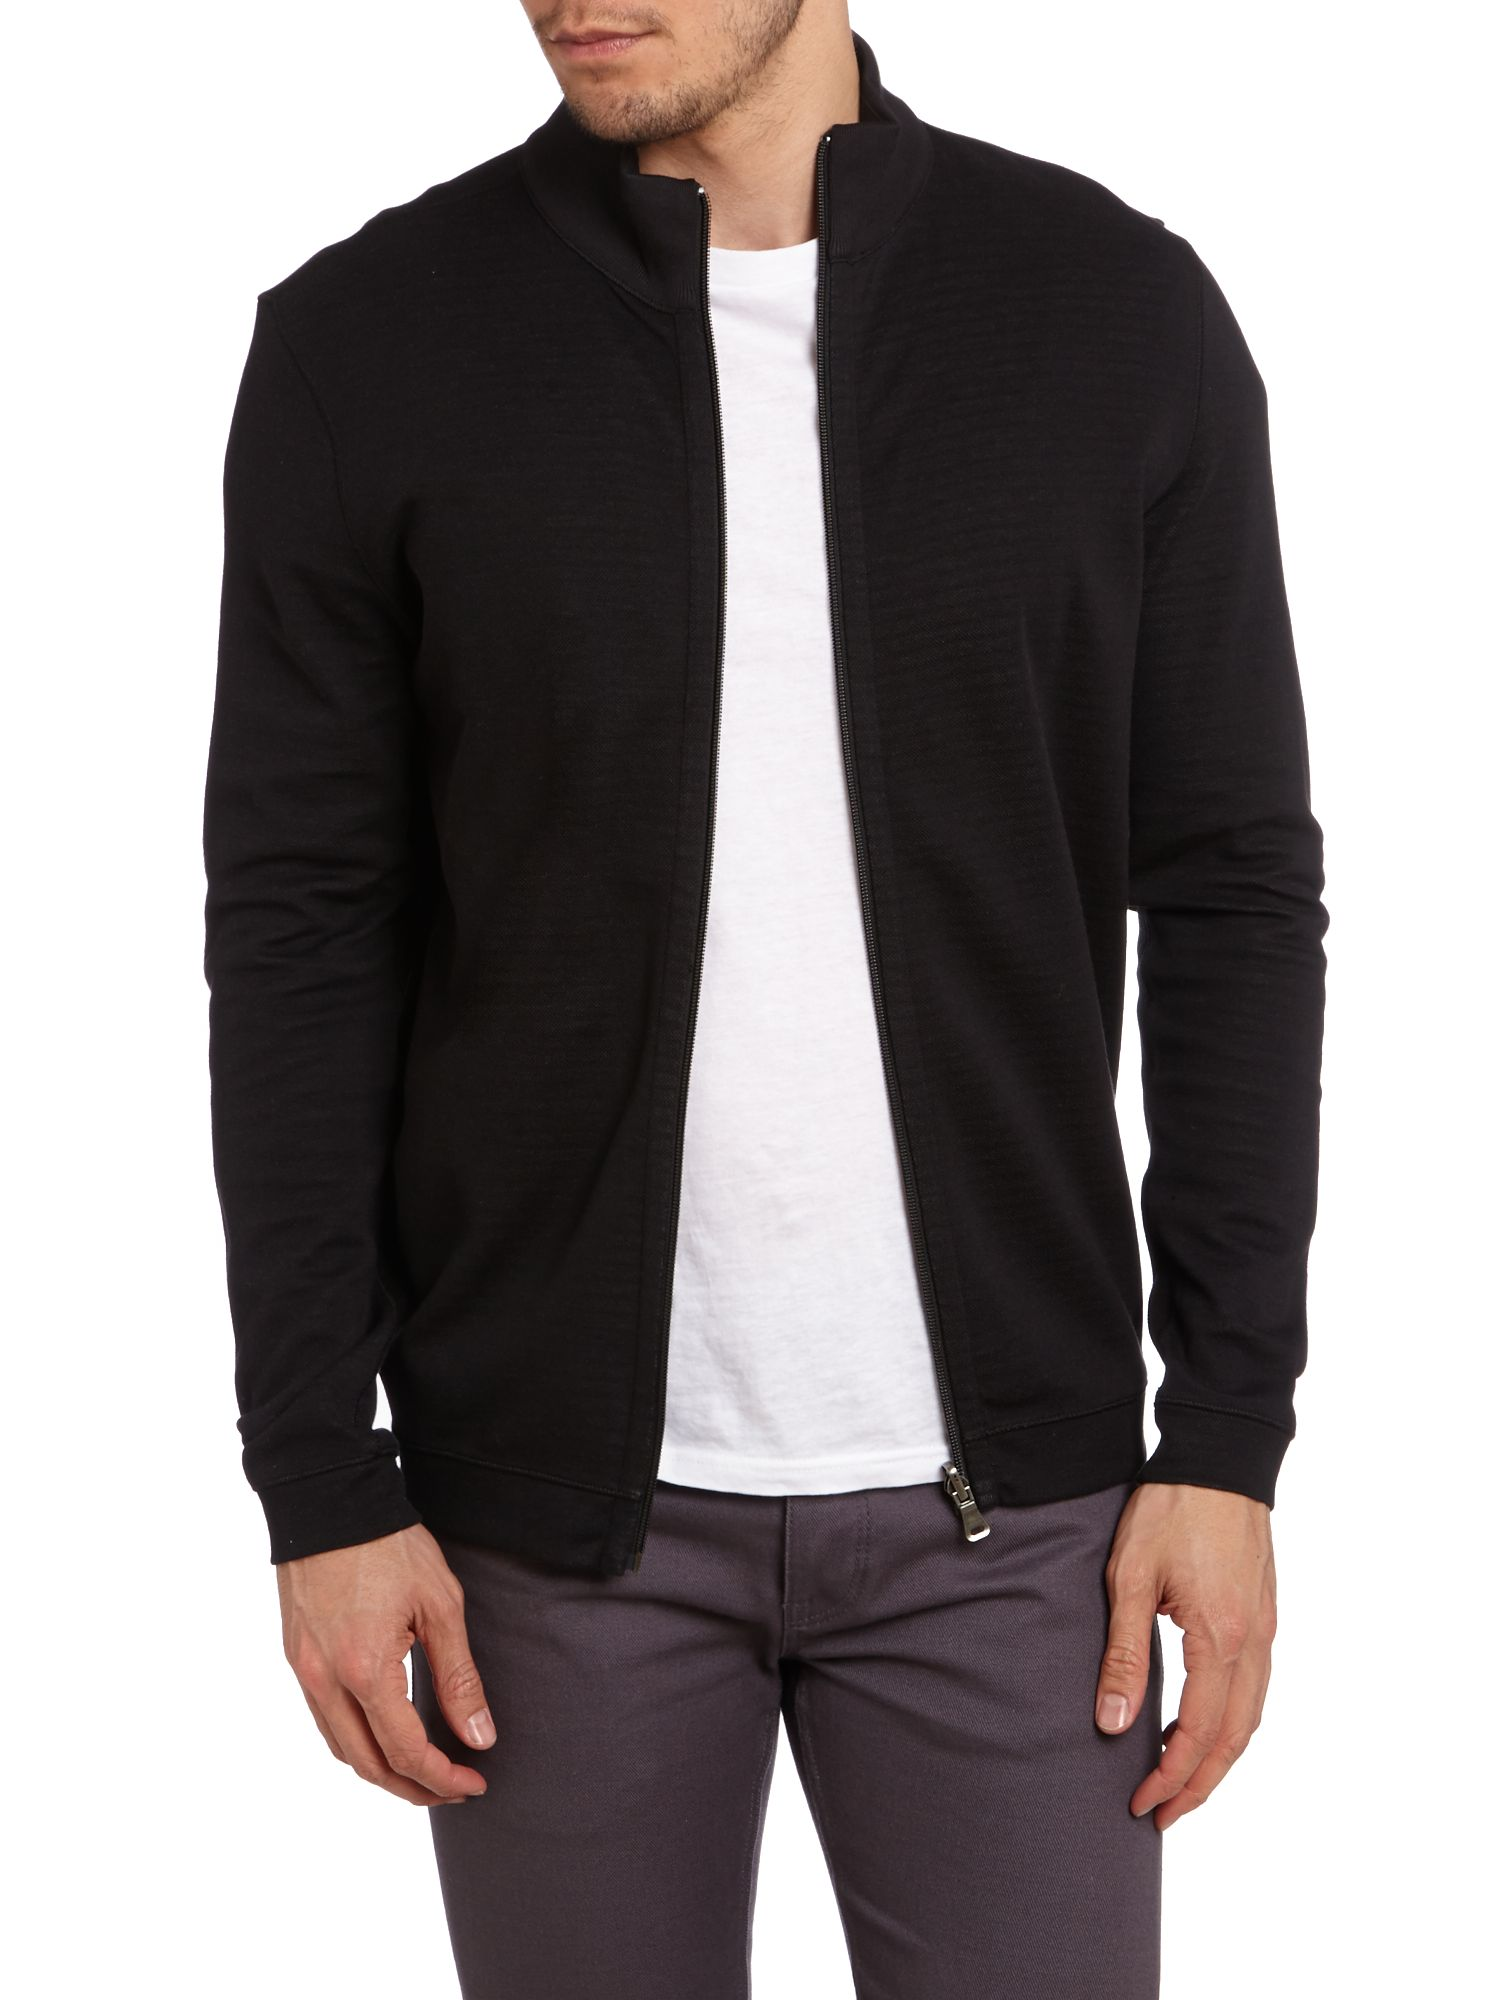 Zip up reverse sweatshirt